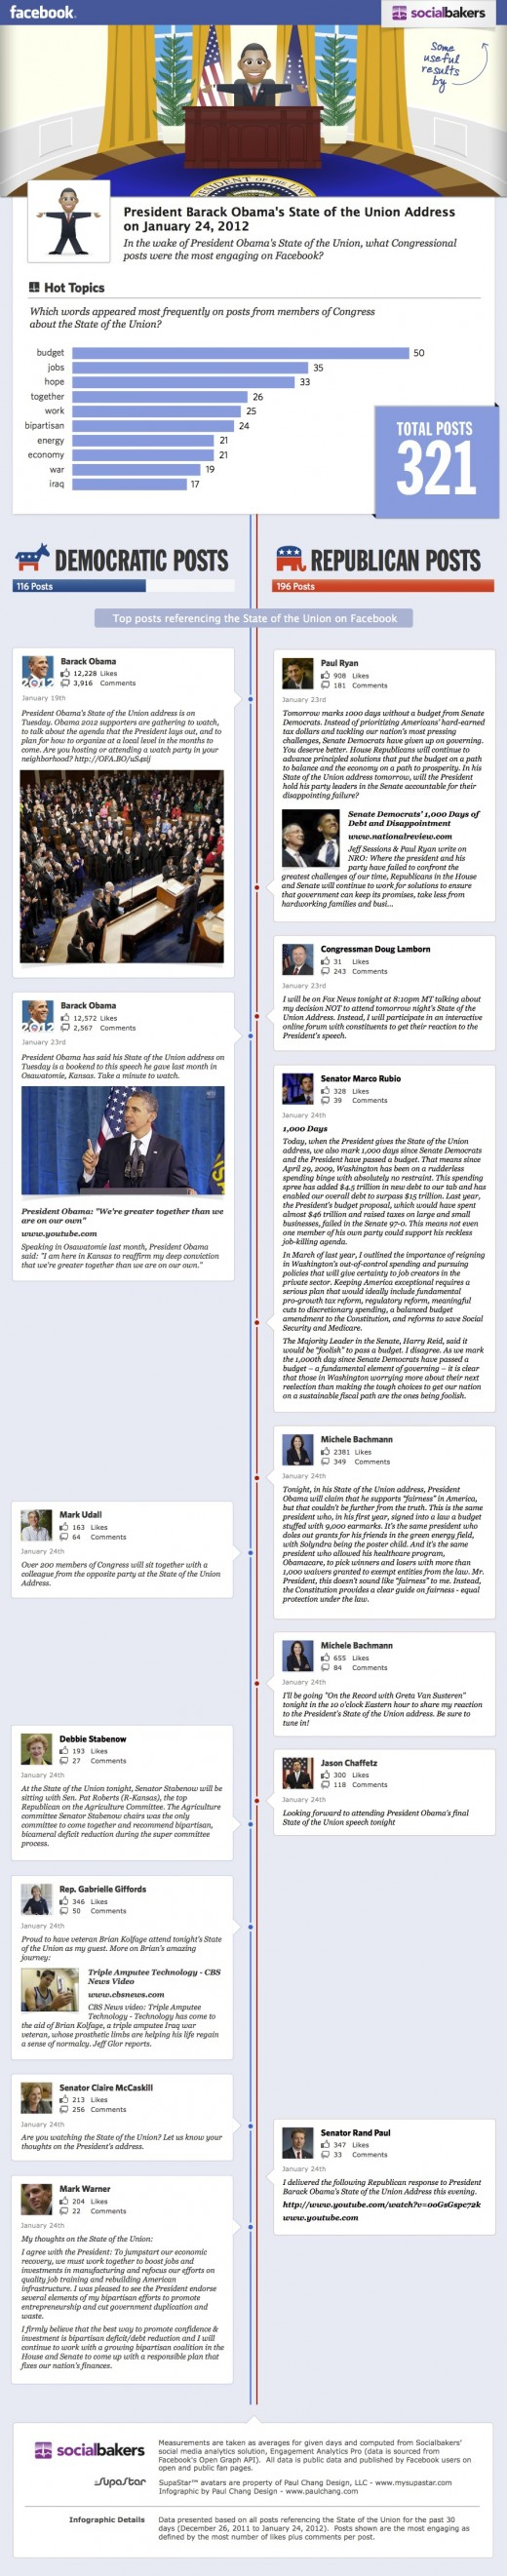 Socialbakers Facebook SOTU infographic v2 520x2642 Facebook engagement by members of Congress for the State of the Union address [Infographic]